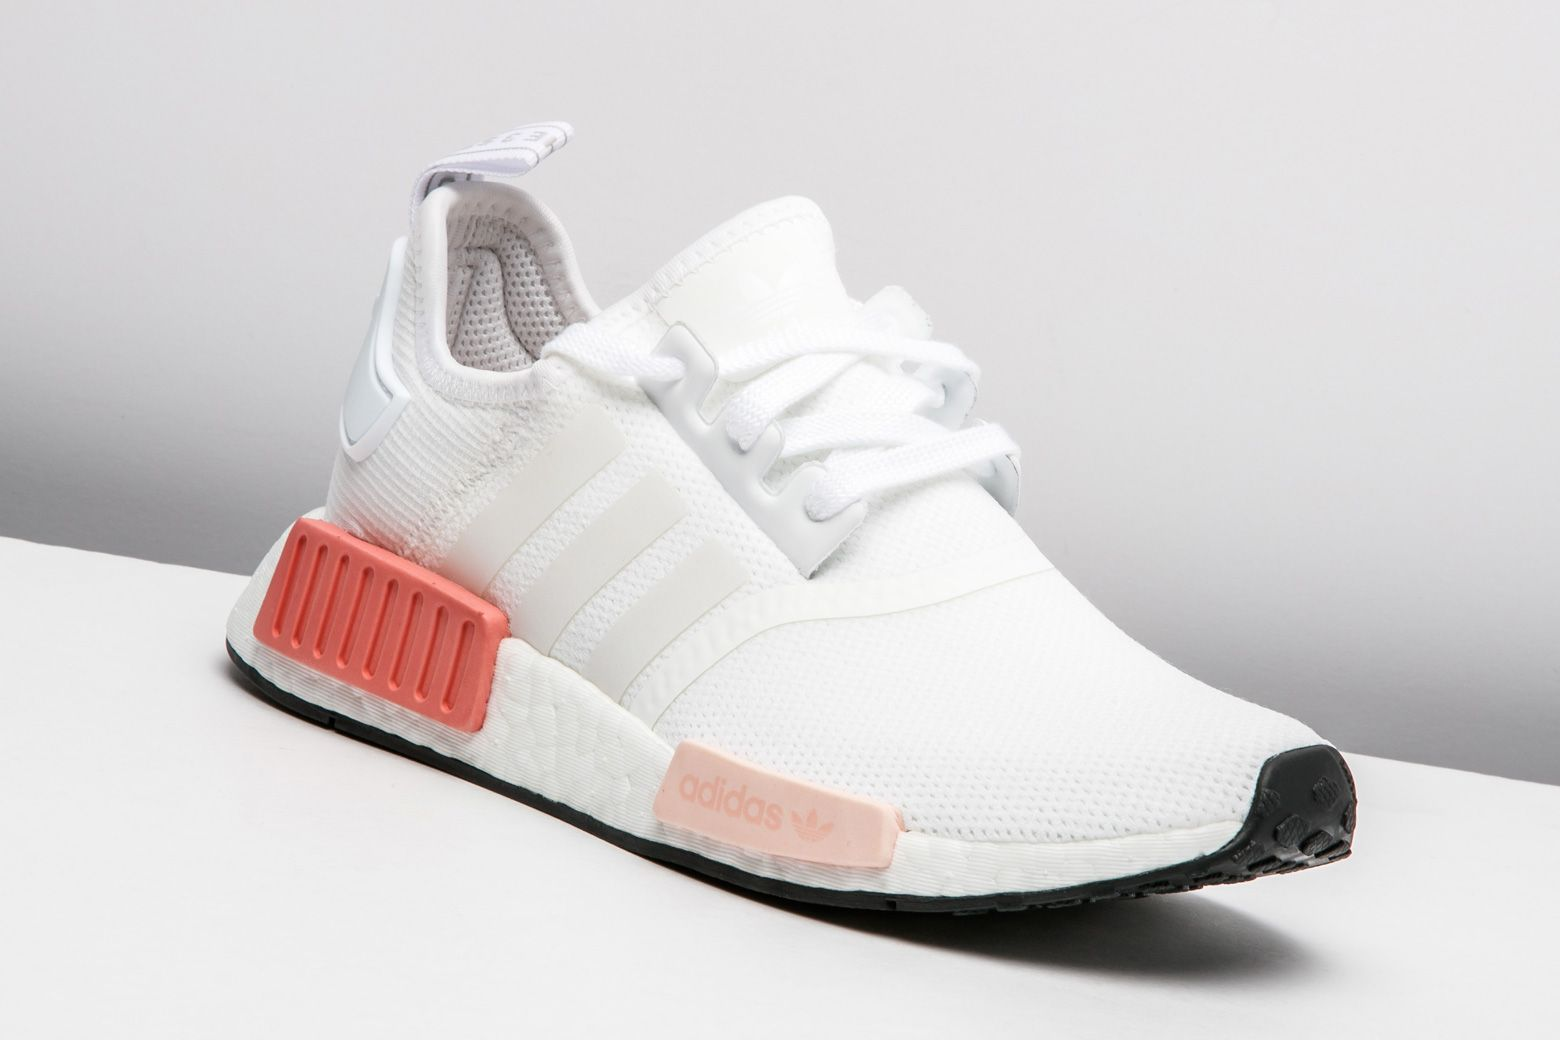 Adidas Nmd R1 W By9952 Adidas White Shoes Adidas Shoes Women